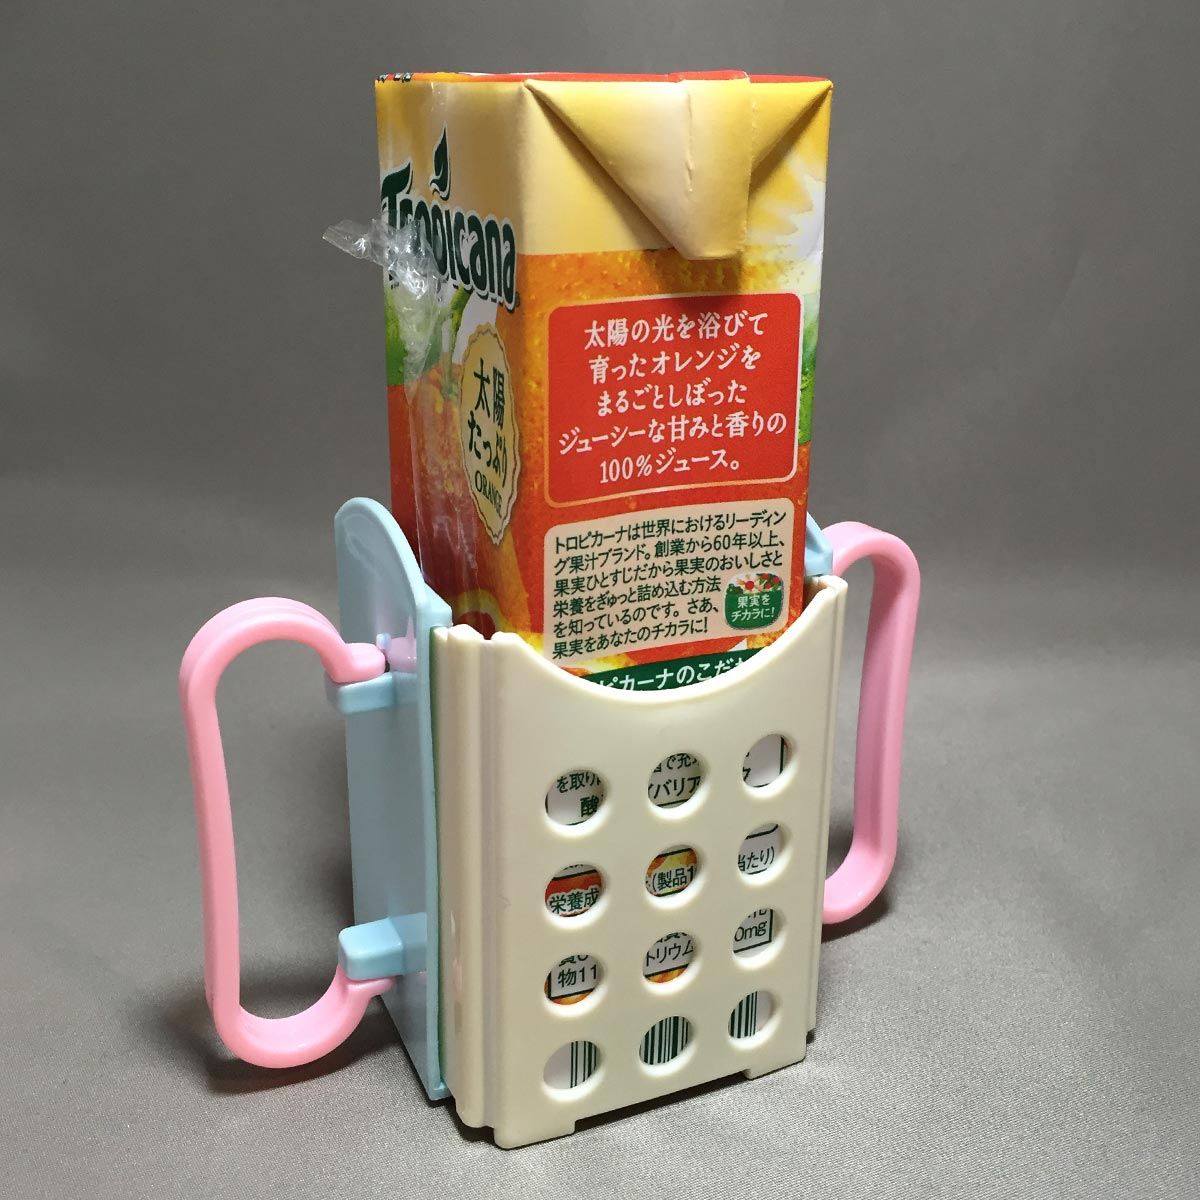 Folding Drink Box Holder - Holding Juice Carton